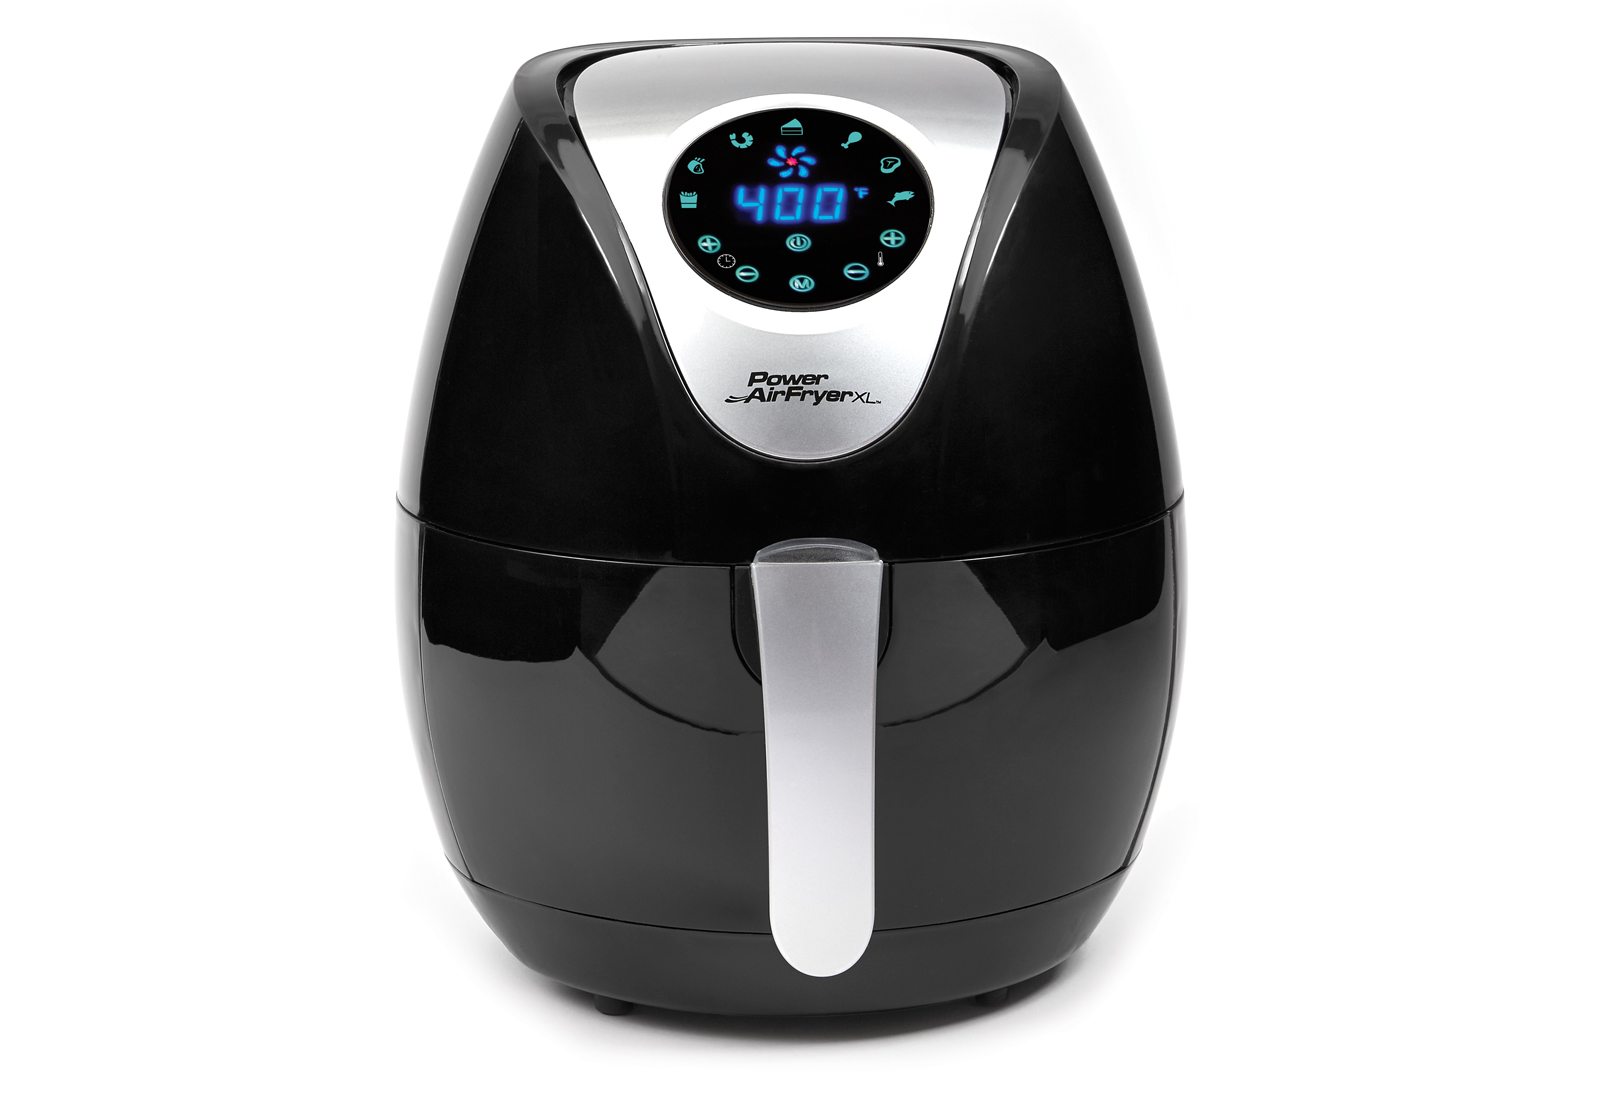 Power AirFryer XL 3.4qt Product Image